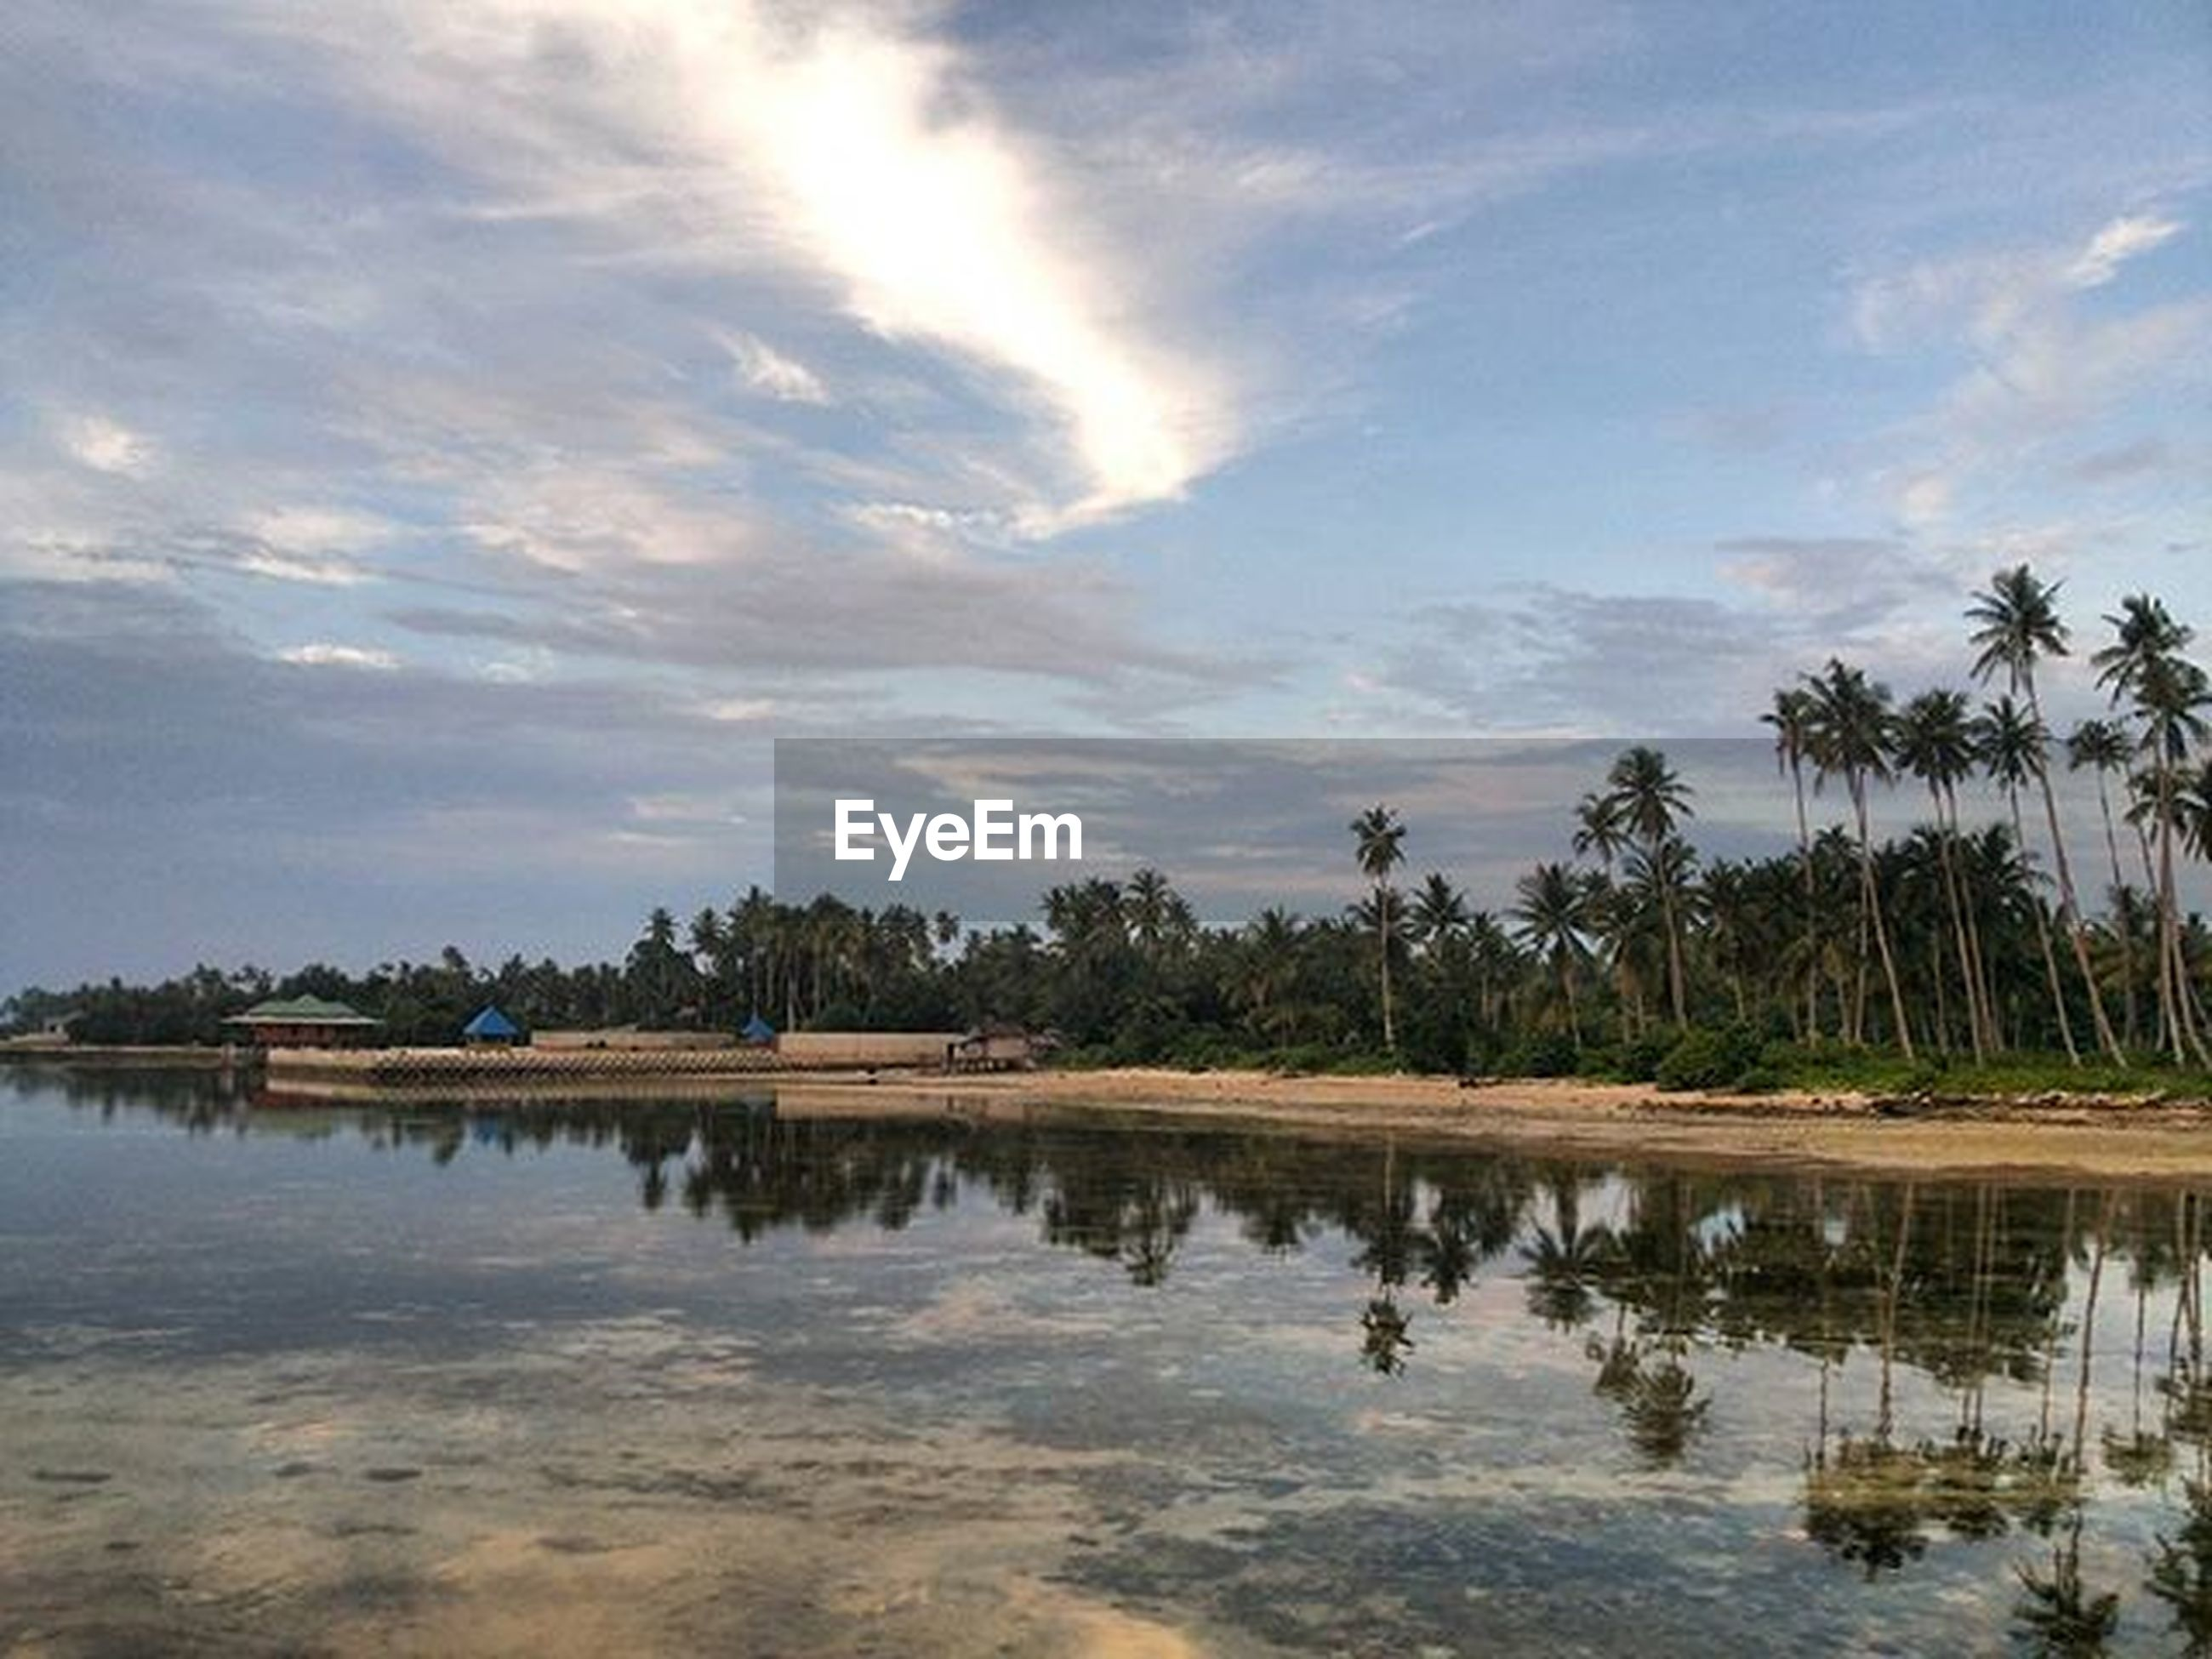 water, tranquility, tranquil scene, sky, tree, reflection, scenics, beauty in nature, lake, waterfront, cloud - sky, nature, cloud, idyllic, calm, palm tree, silhouette, standing water, non-urban scene, cloudy